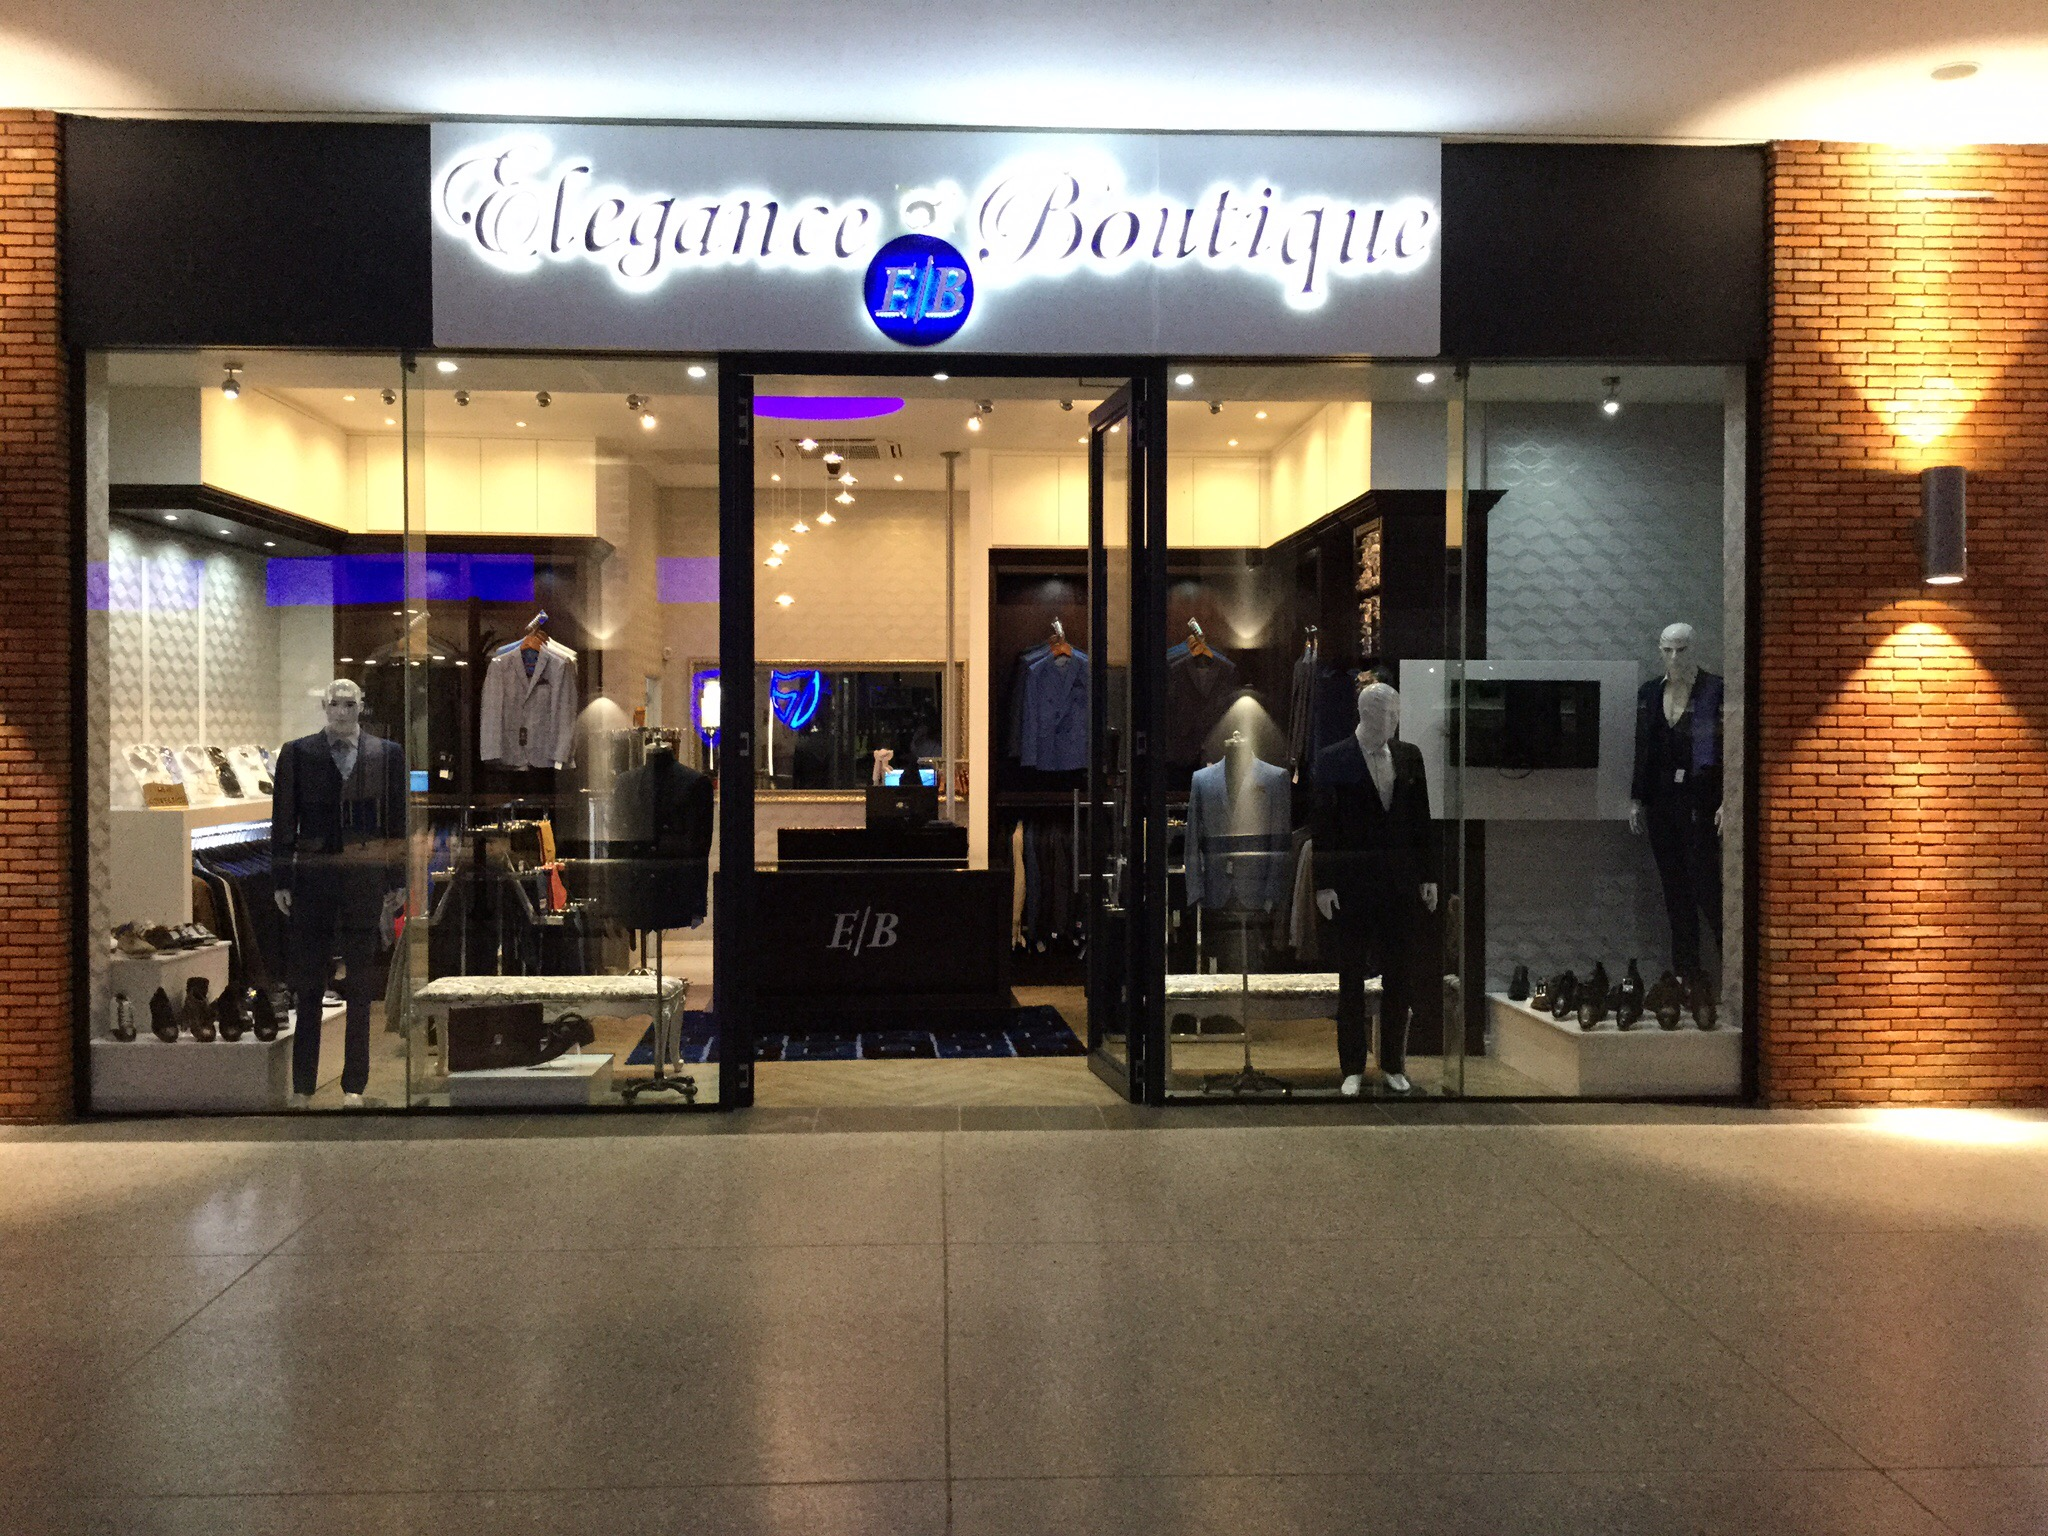 Elegance Boutique, quality, stylish and